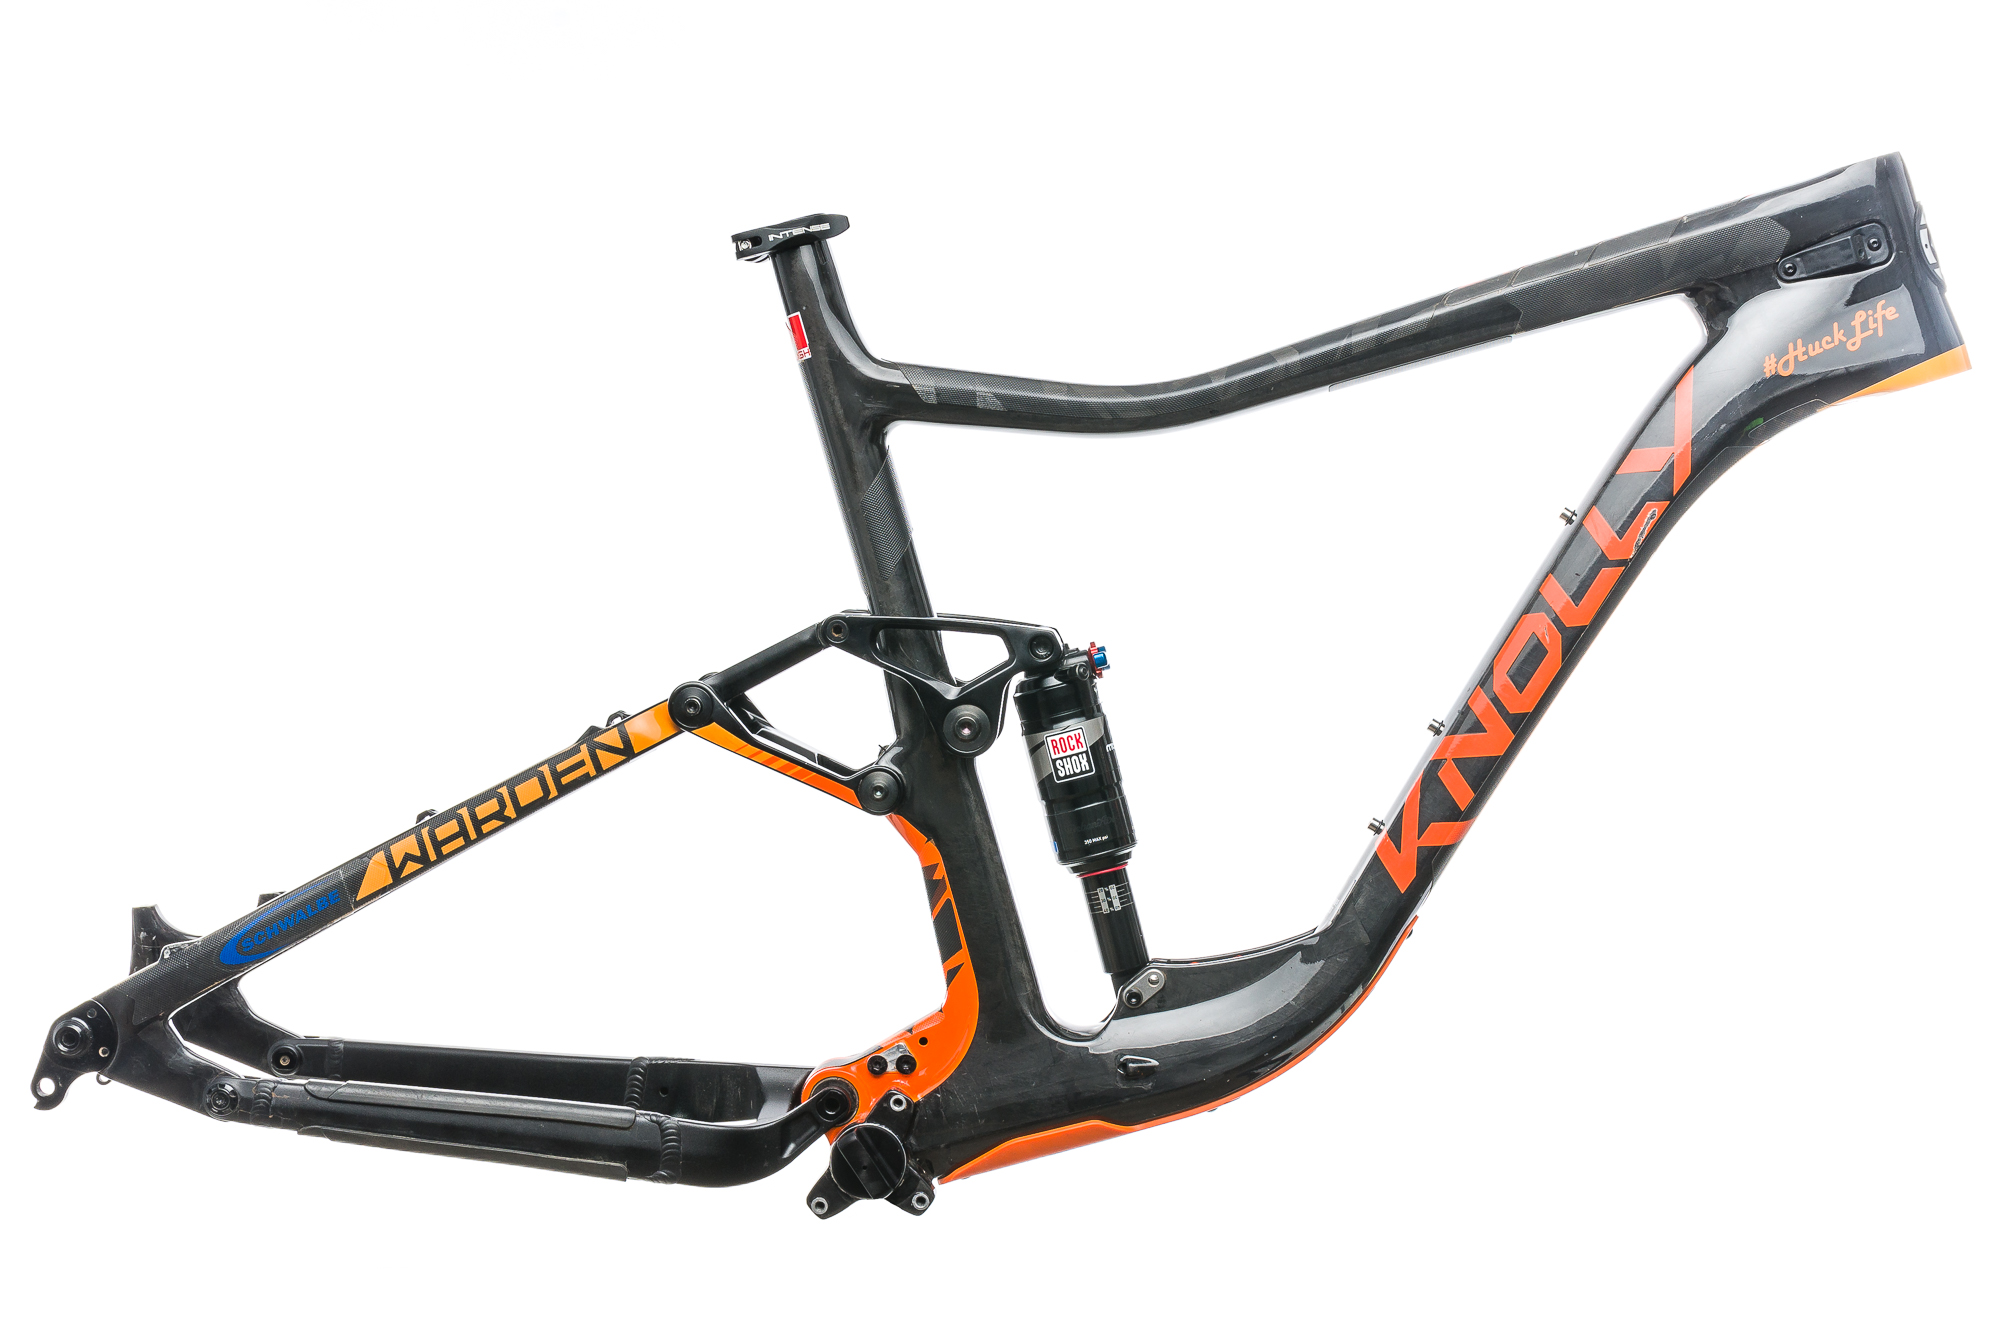 db0ad1040c73 2018 Knolly Warden Carbon Frame X-Large 27.5